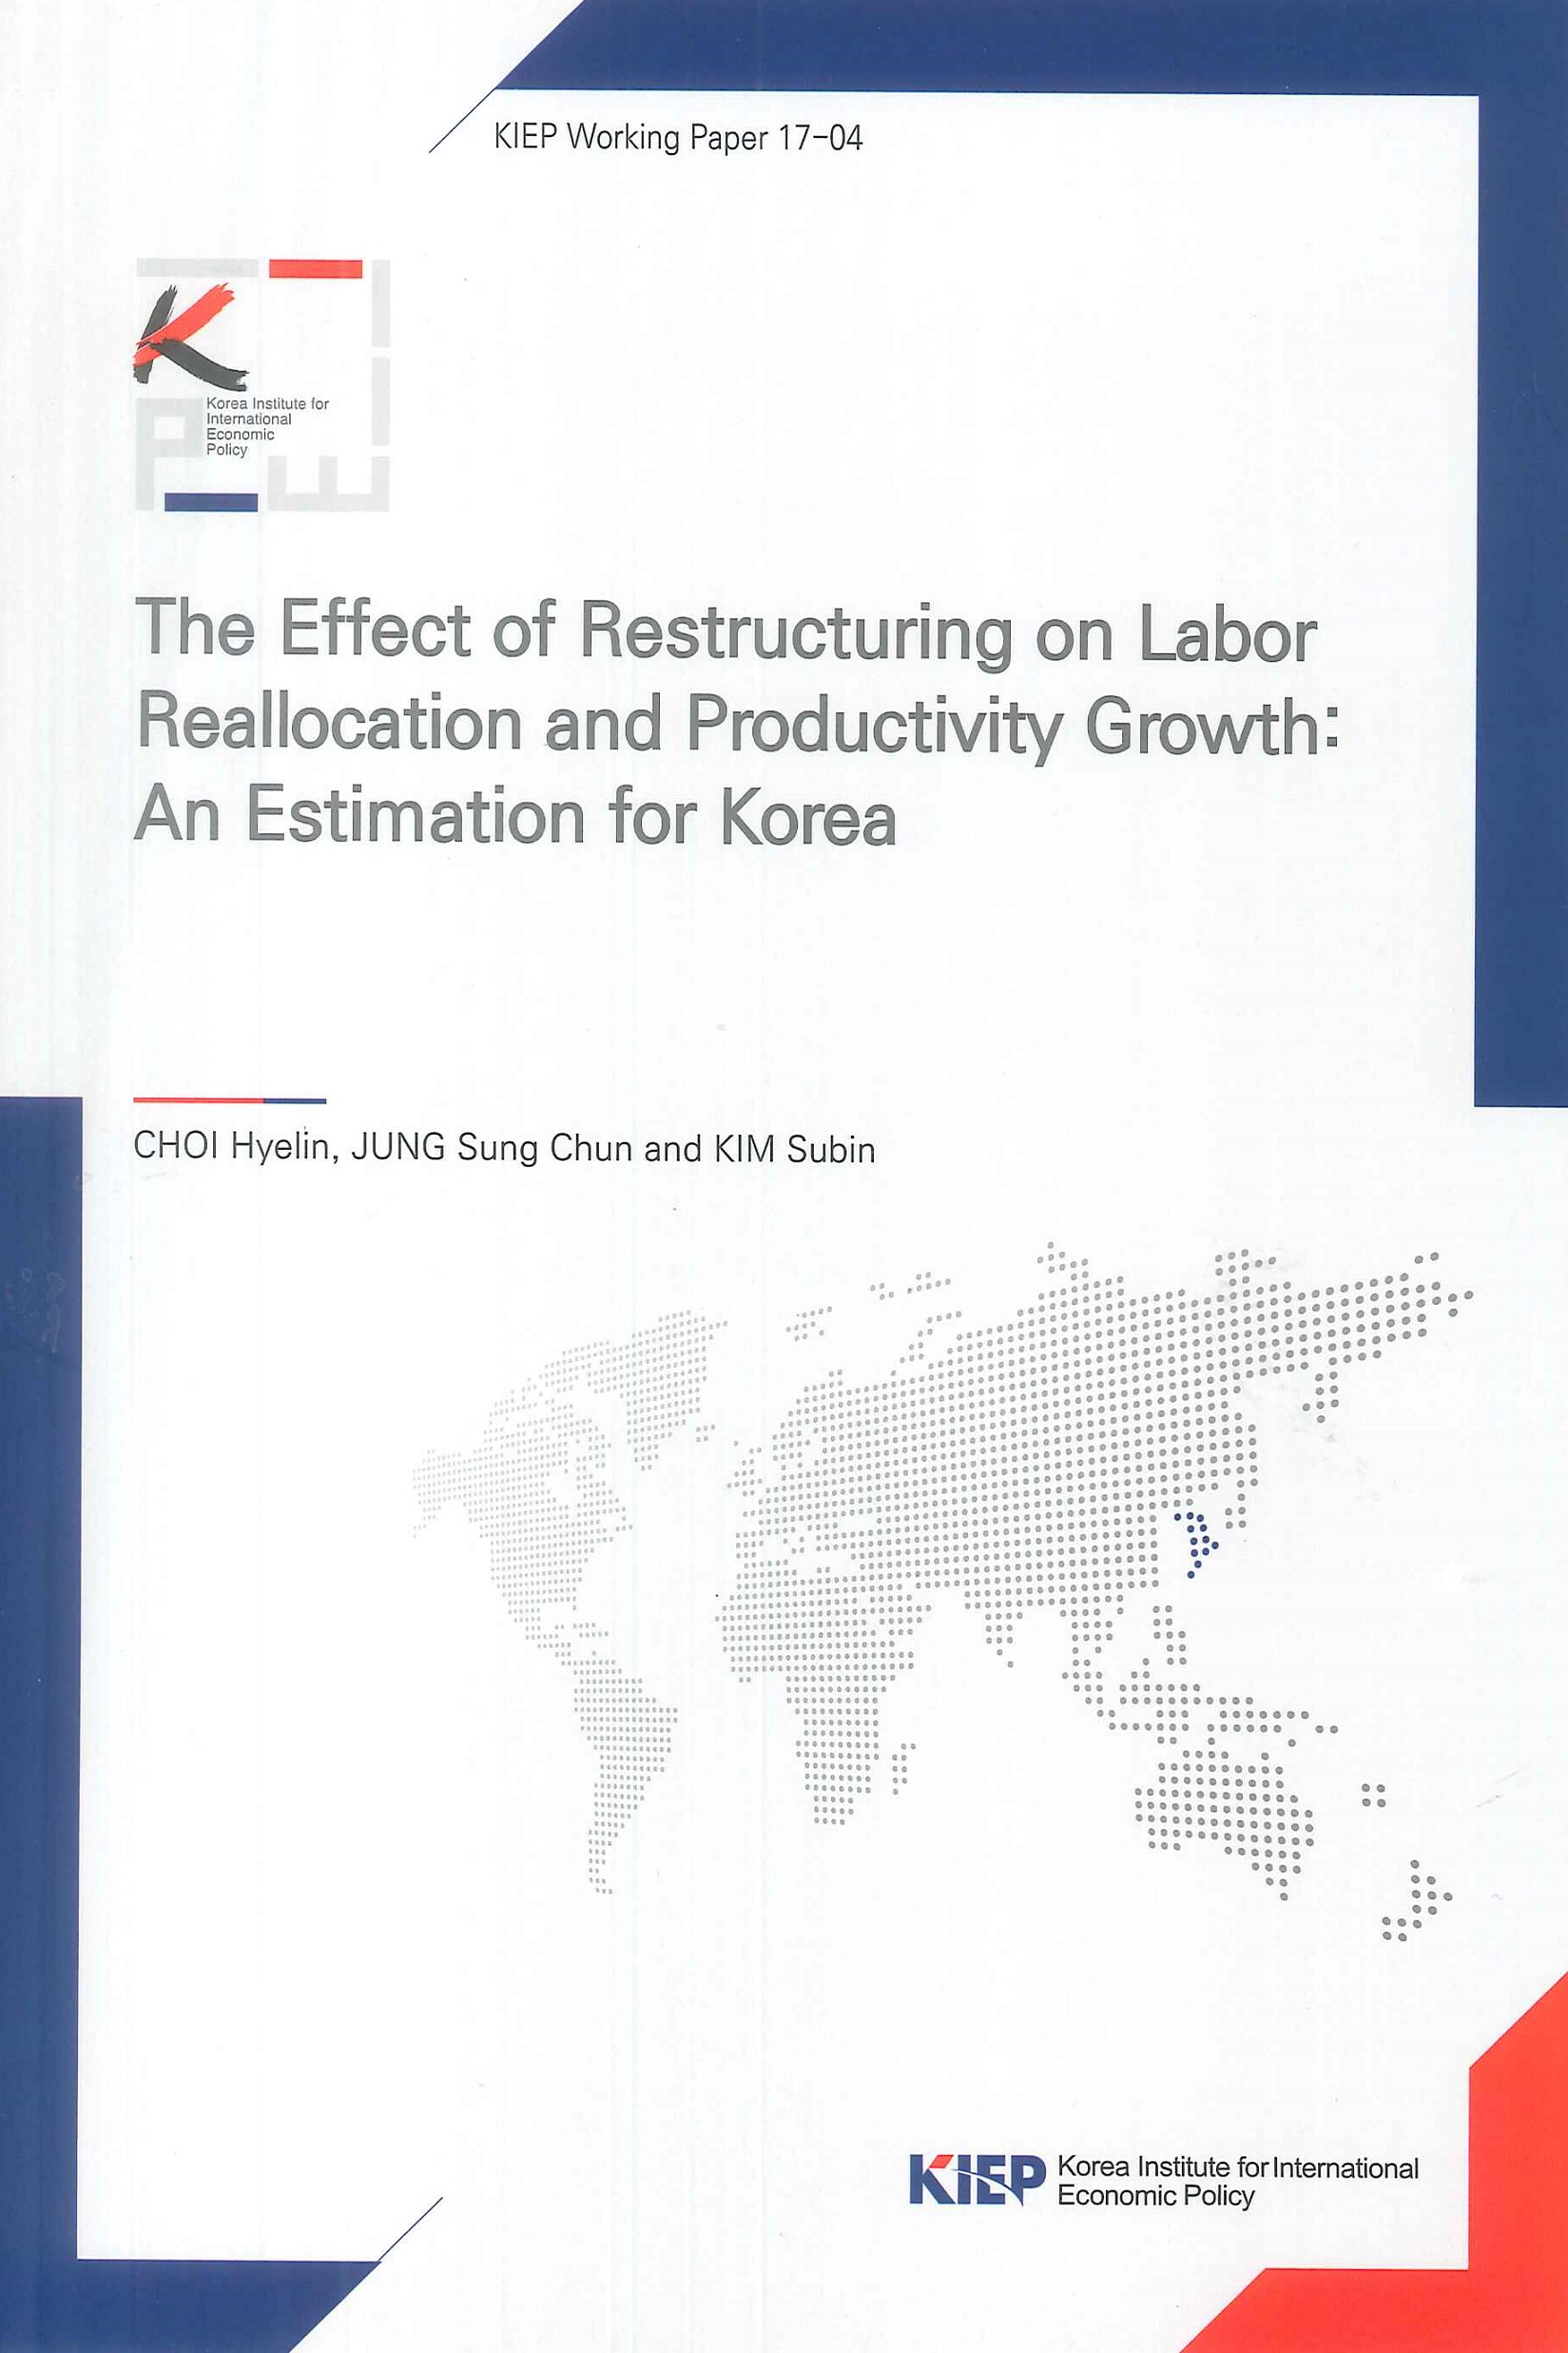 The effect of restructuring on labor reallocation and productivity growth:an estimation for Korea